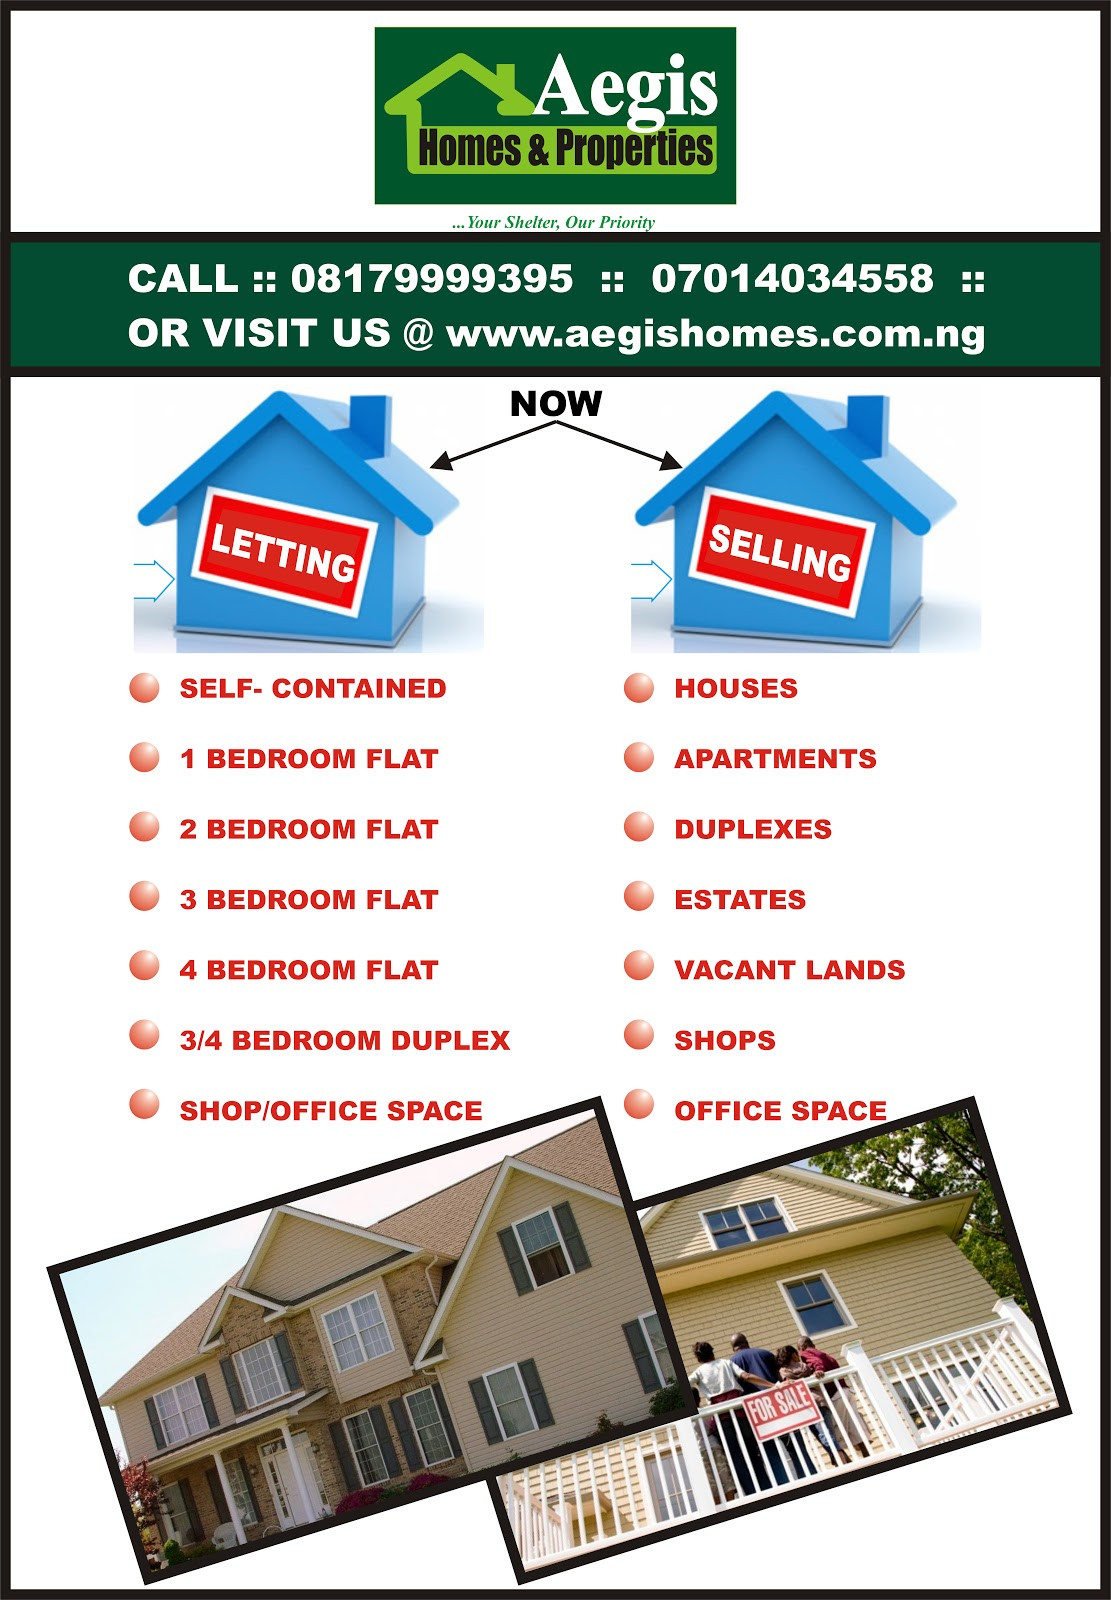 Aegis Homes